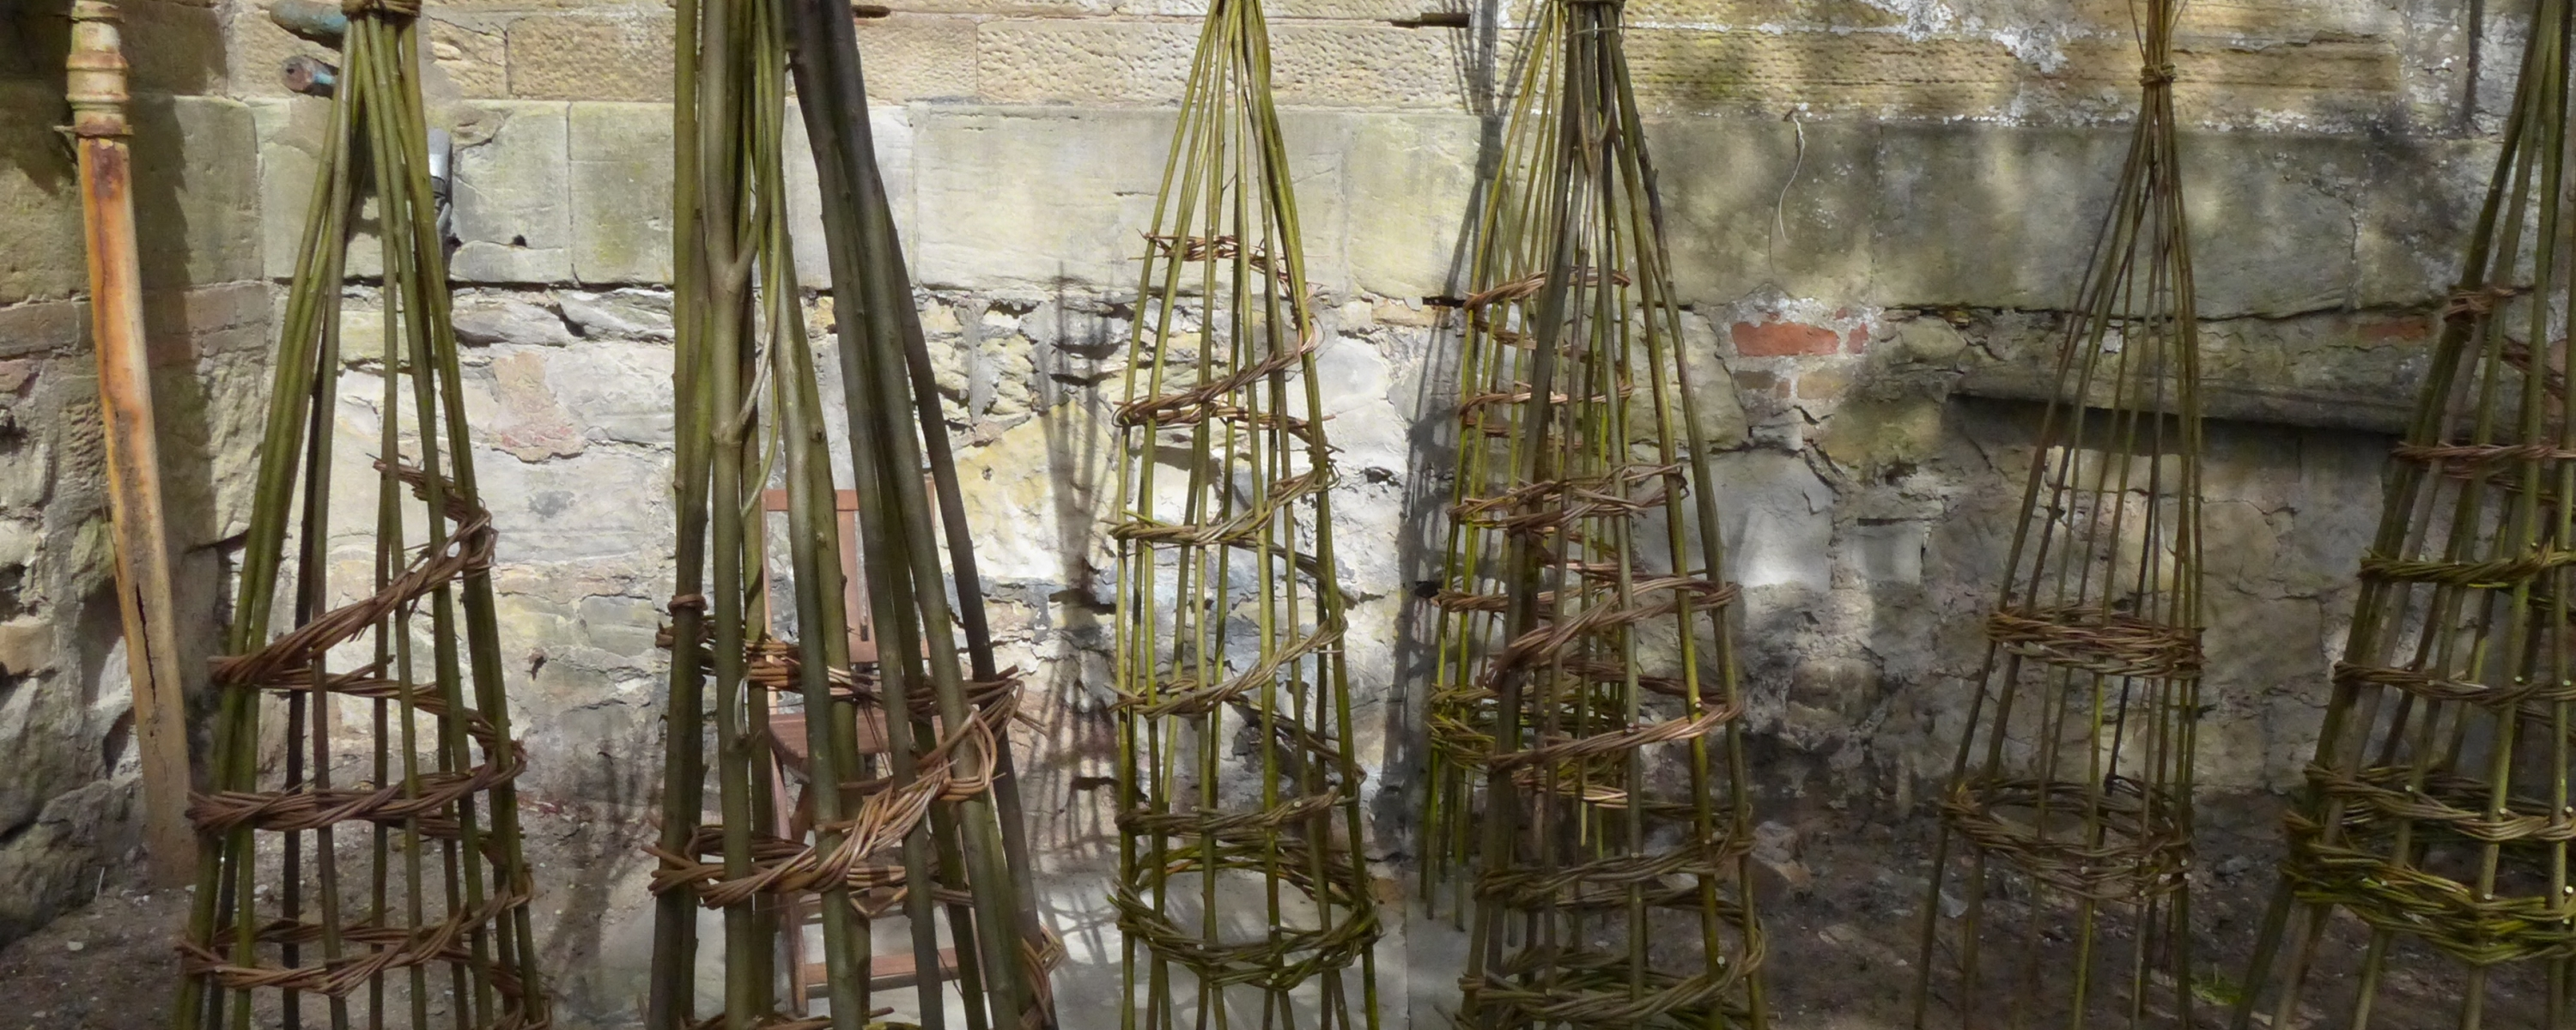 5.willow structures